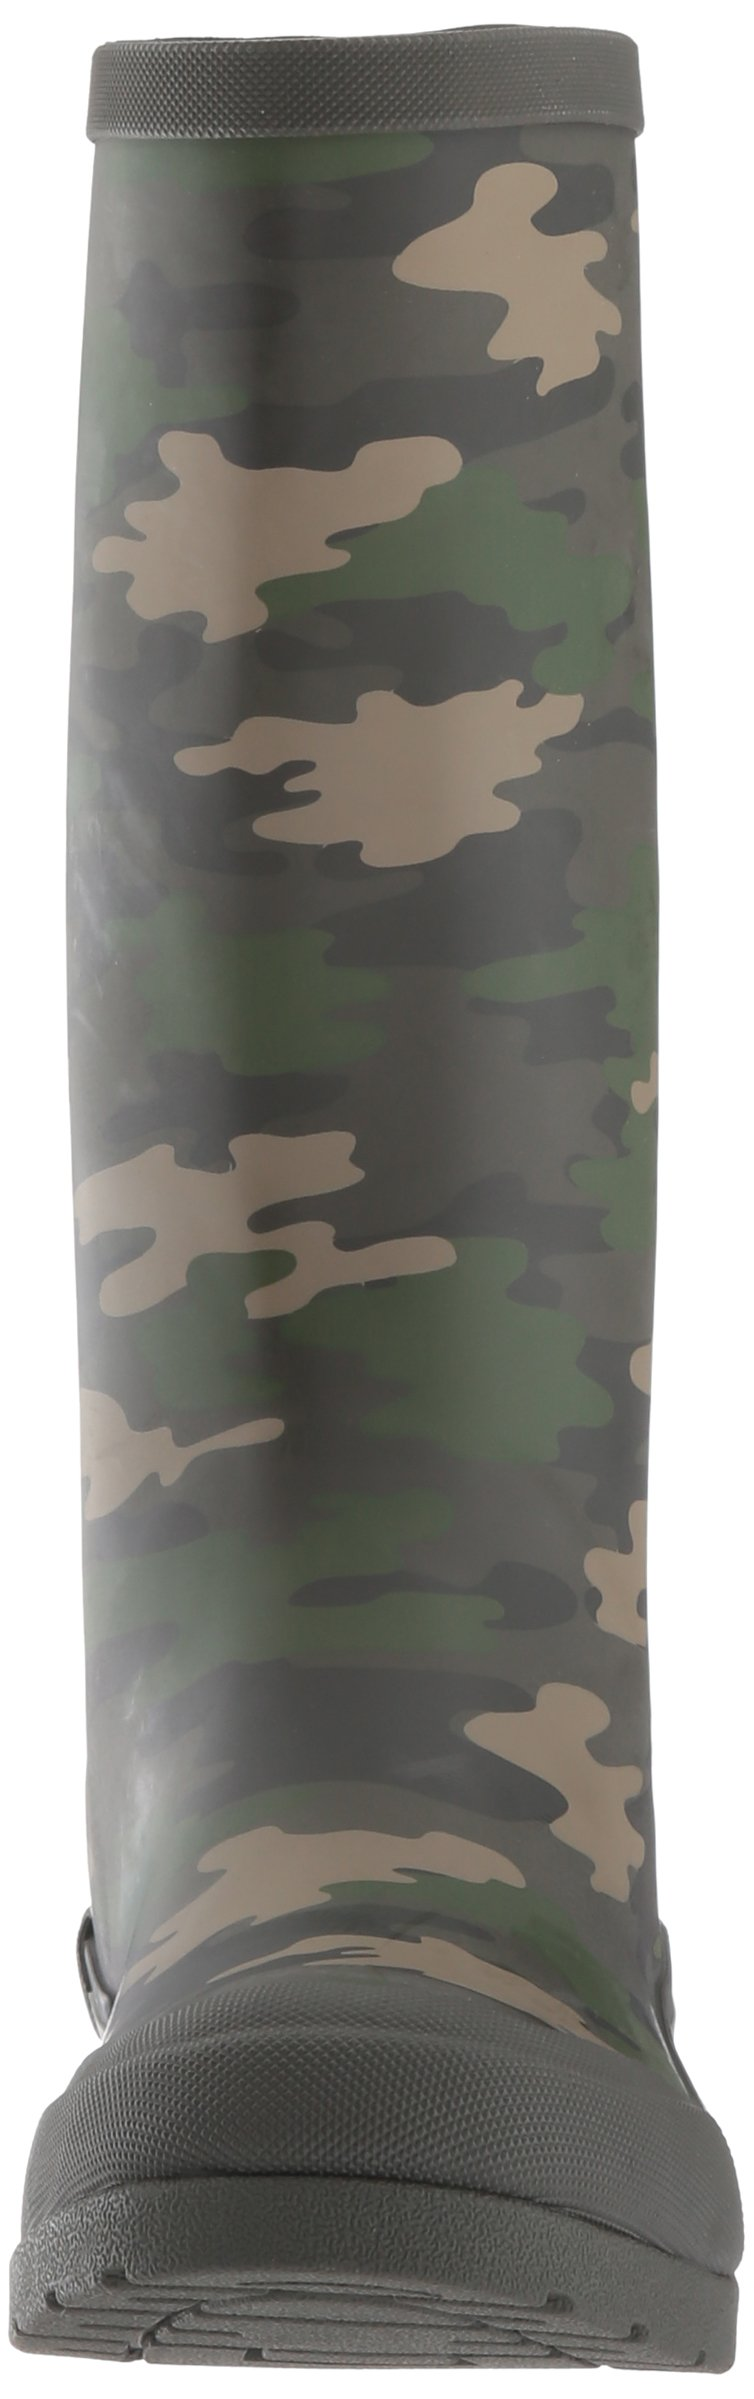 Western Chief Boys Waterproof Classic Youth size Rain Boots, Camo Green, 13 M US Little Kid by Western Chief (Image #4)